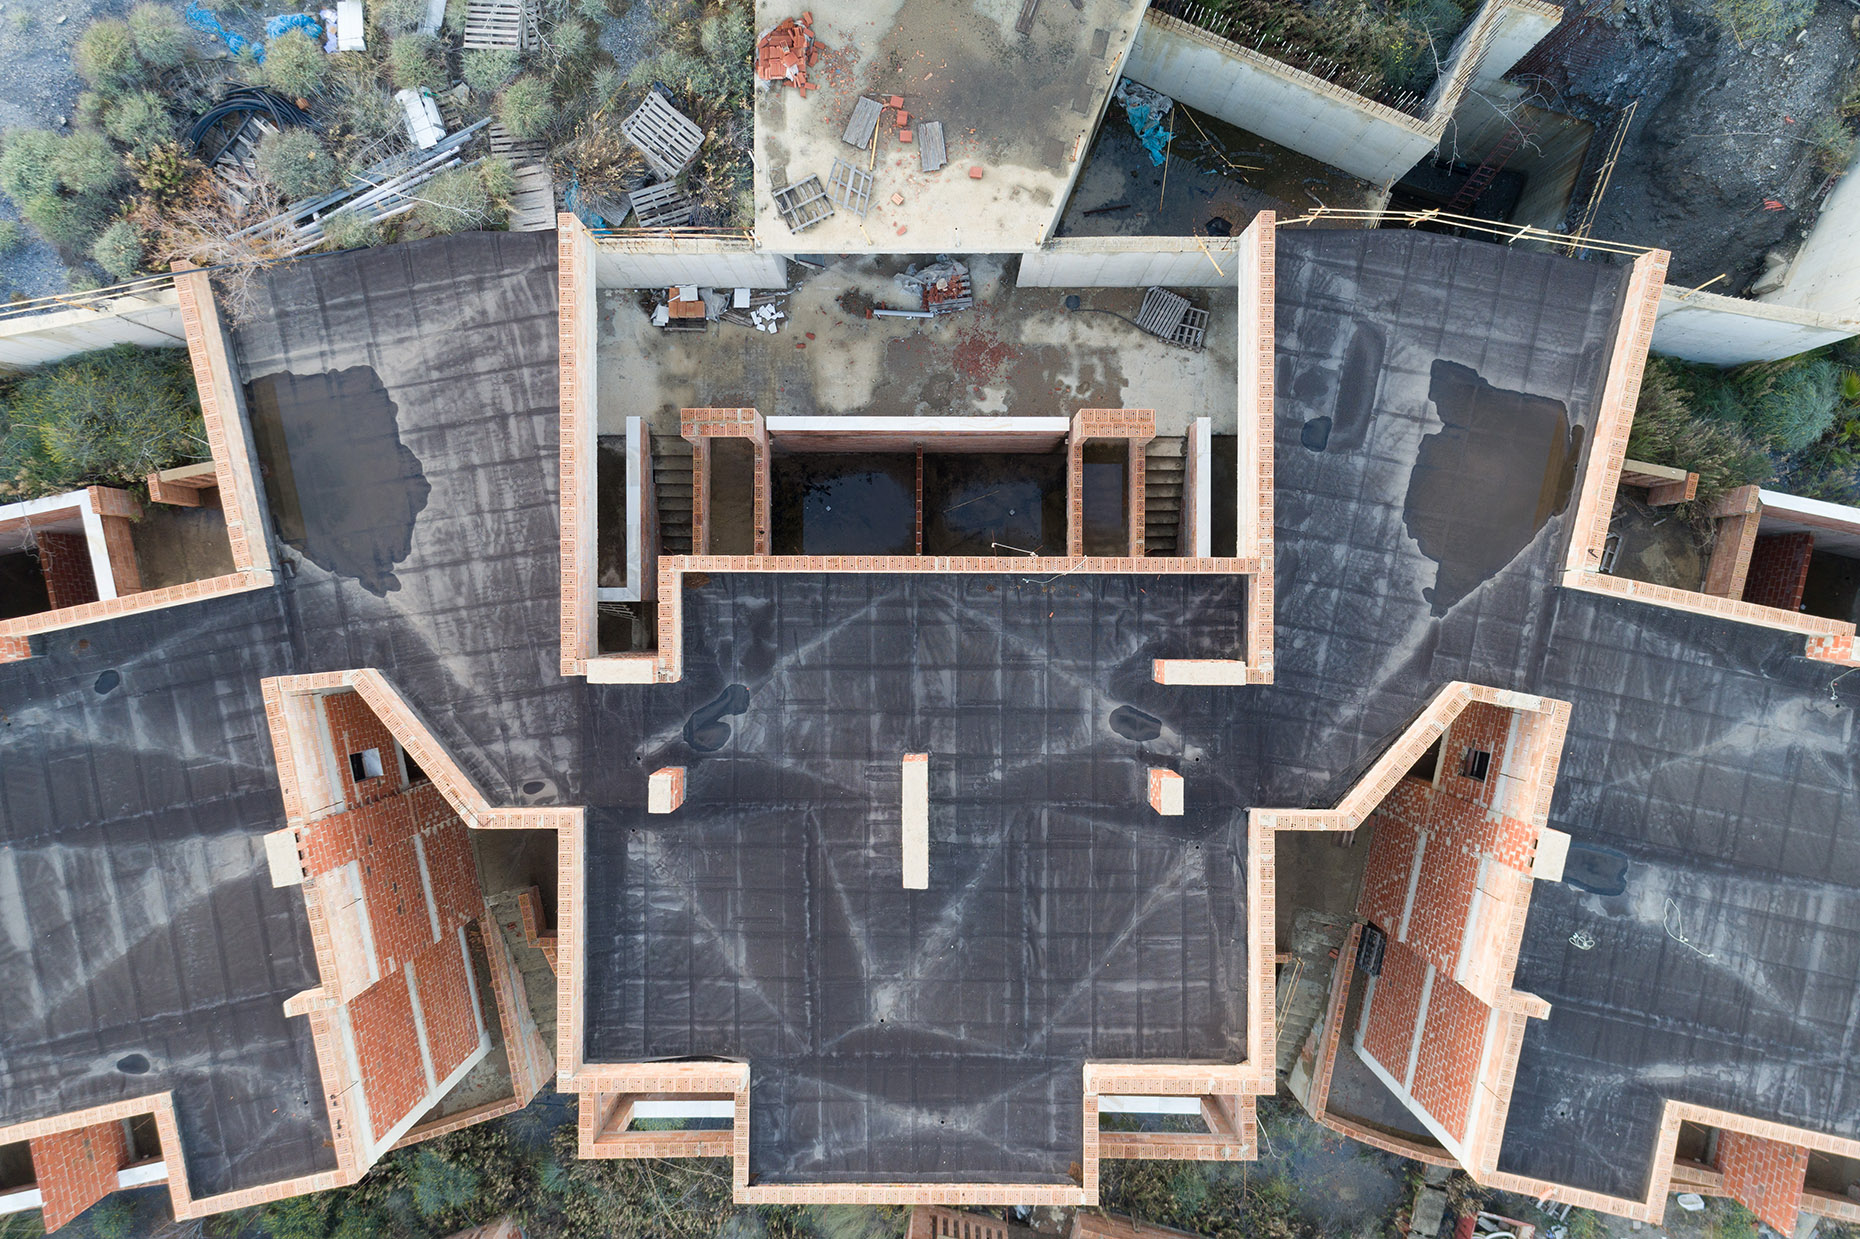 Aerial drone photography abandoned house spain